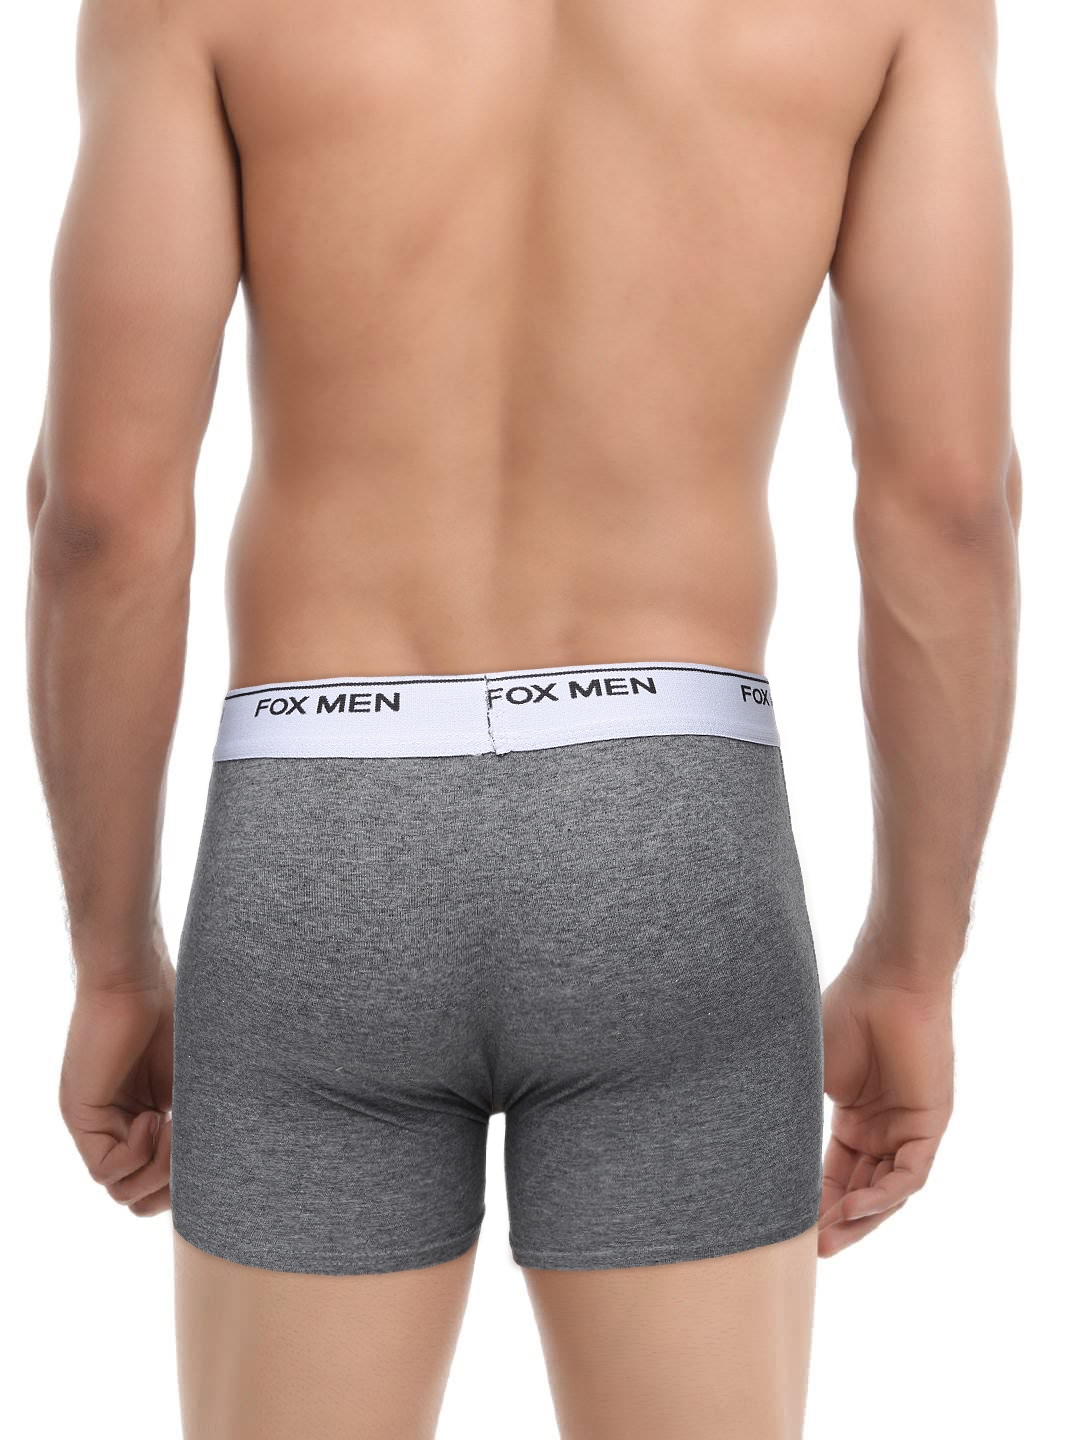 Product Features giving you two high quality women boxer shorts for the price of one.